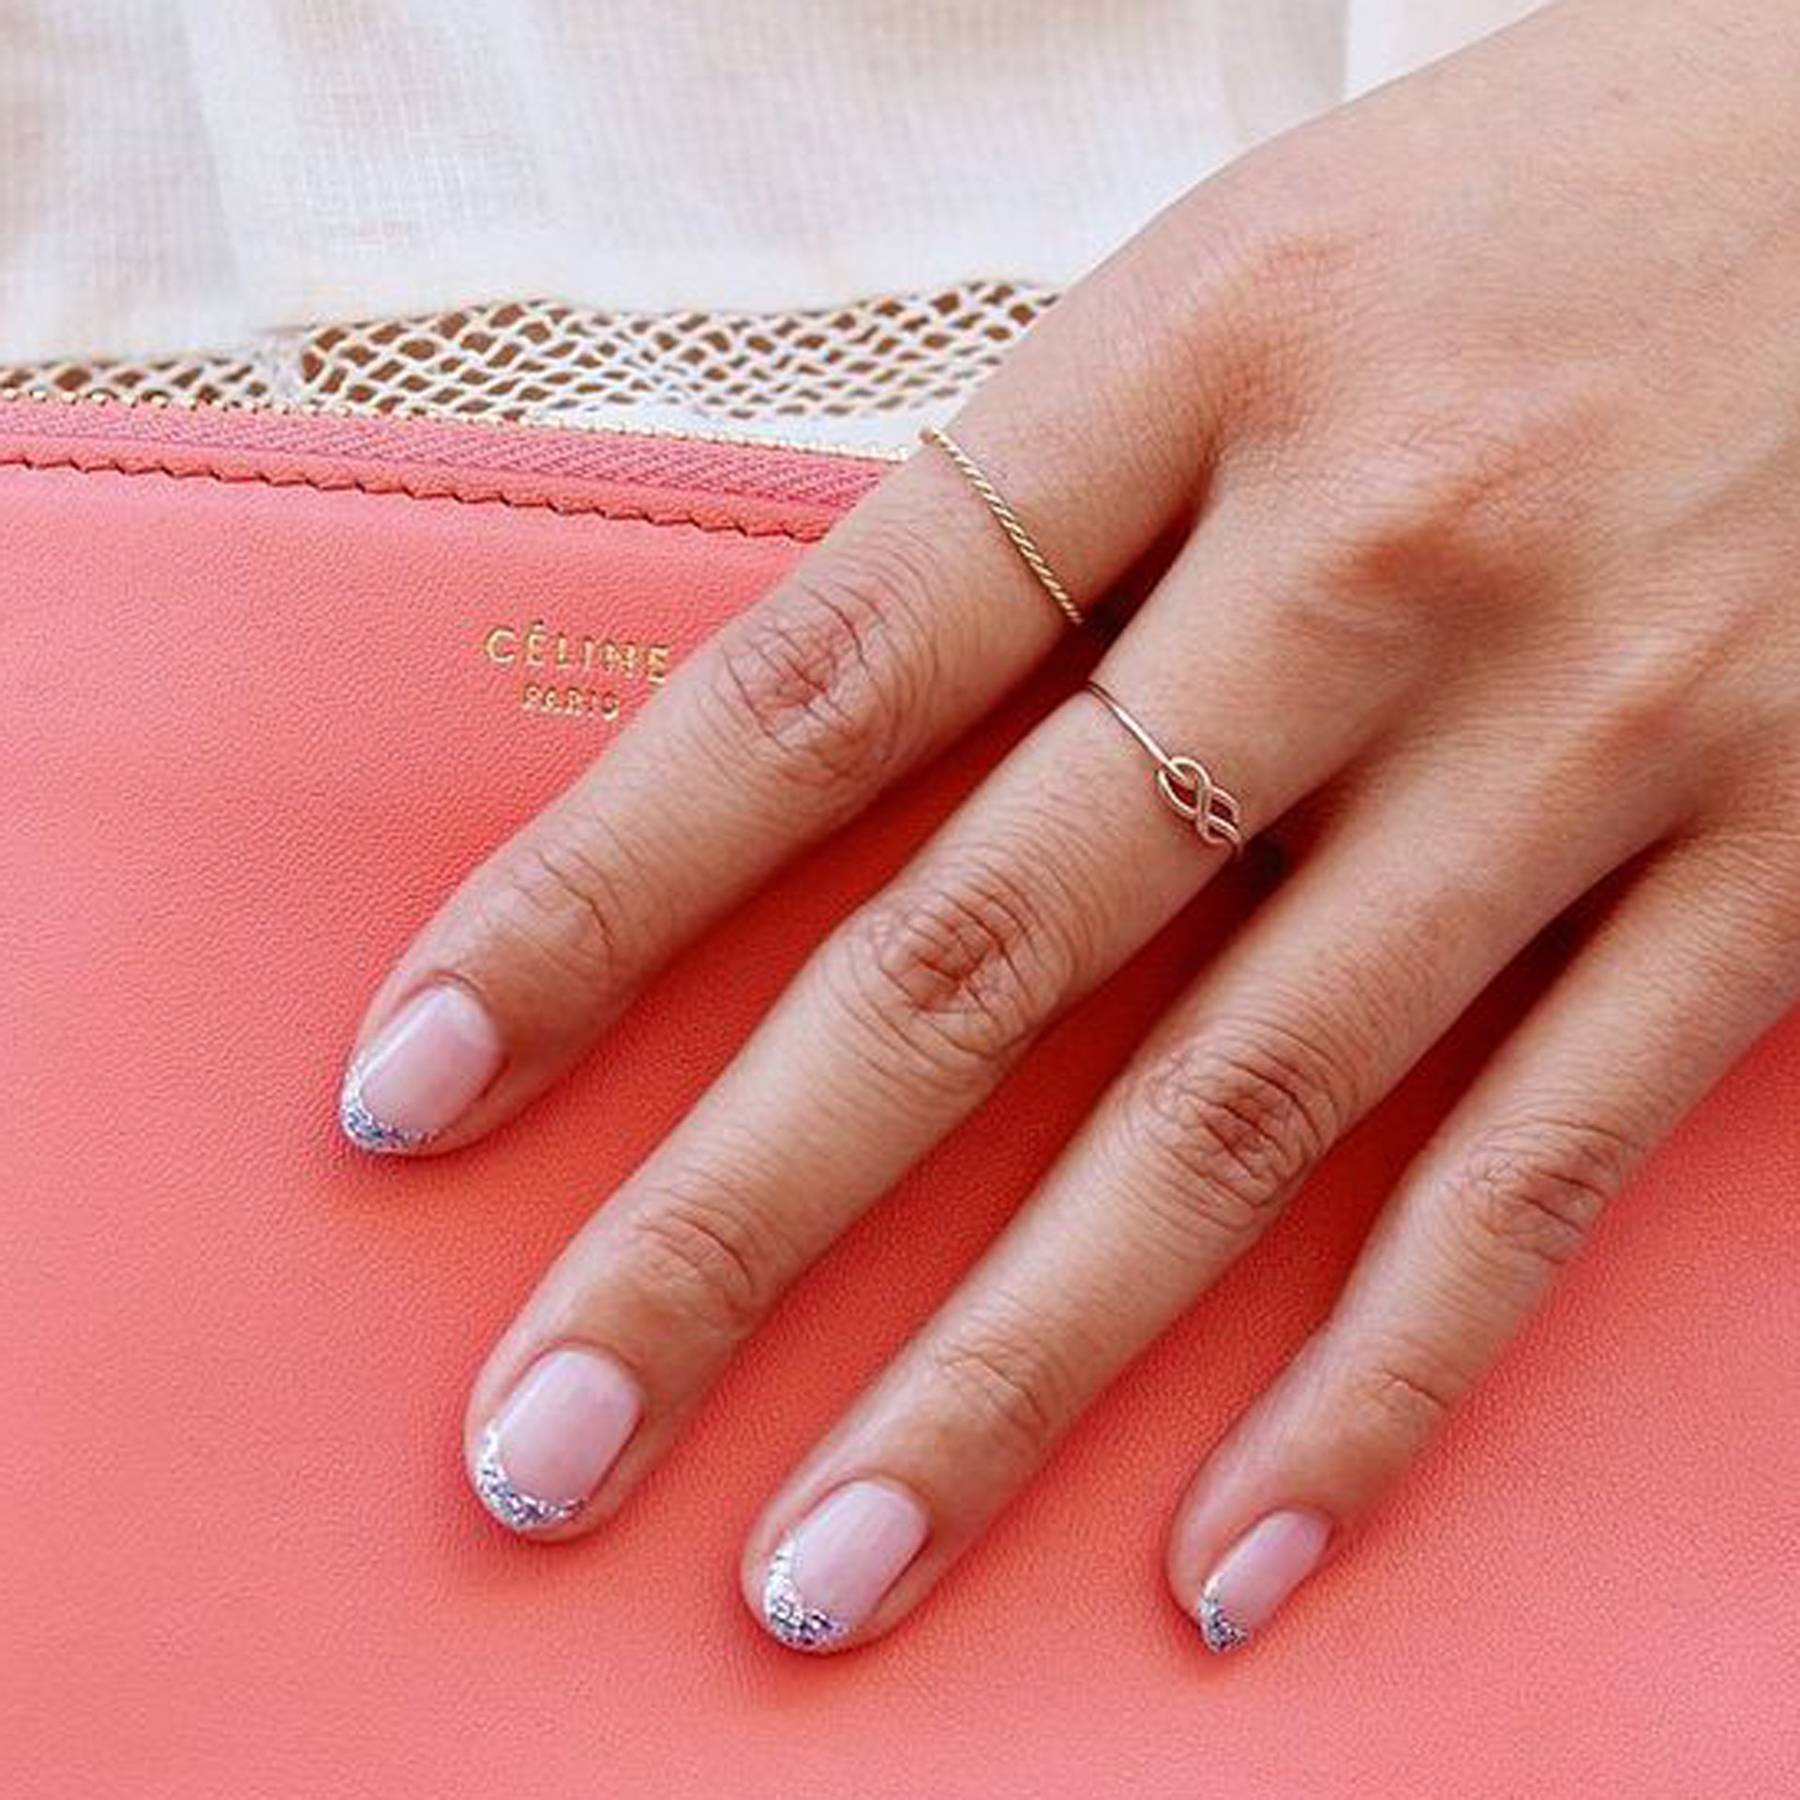 Wedding Nails 19 Beautiful Nail Art Ideas For Your Big Day Glamour Uk